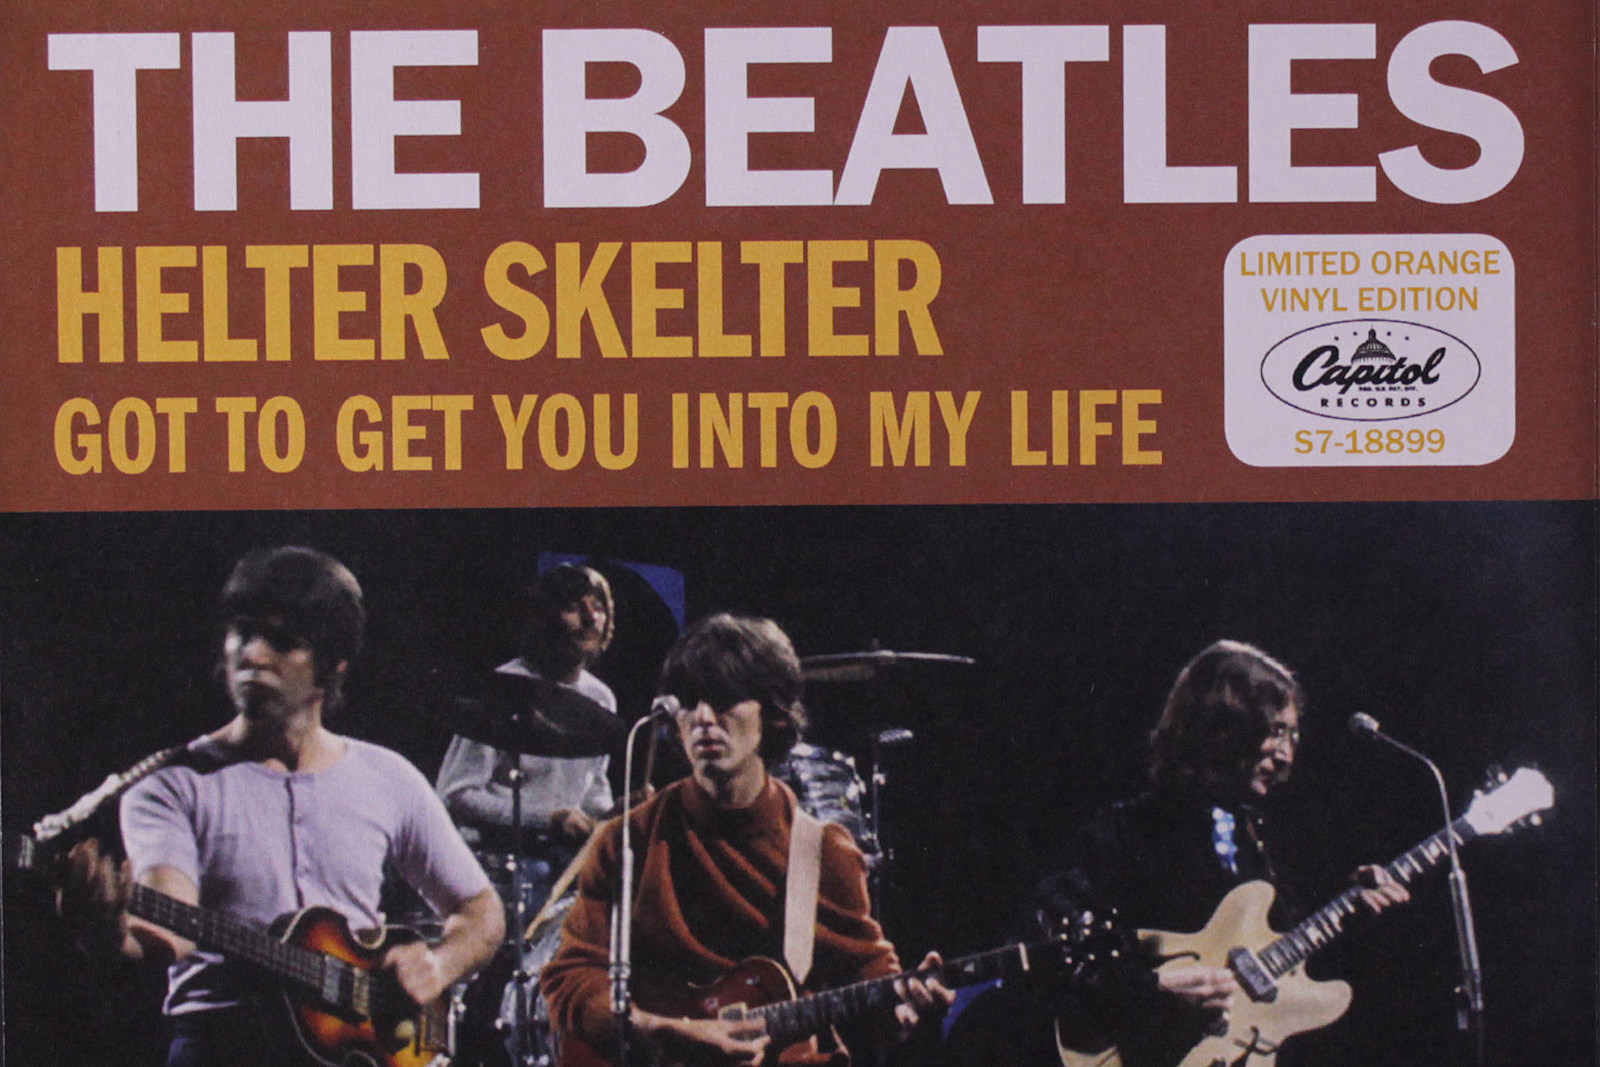 50 Years Ago: The Beatles Record 27-Minute Version of 'Helter Skelter'